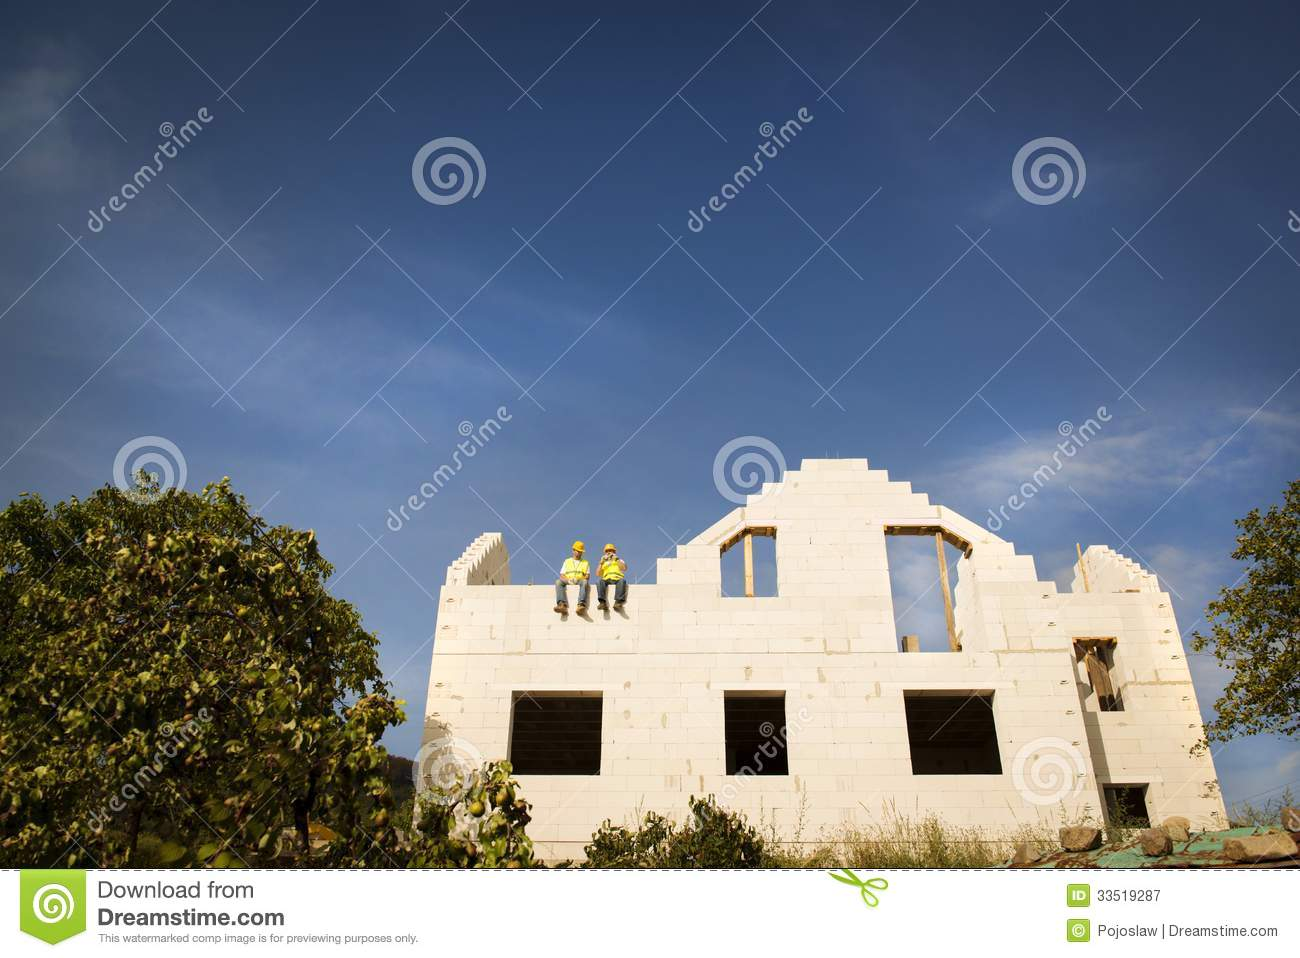 House construction royalty free stock photography image for New house construction contract